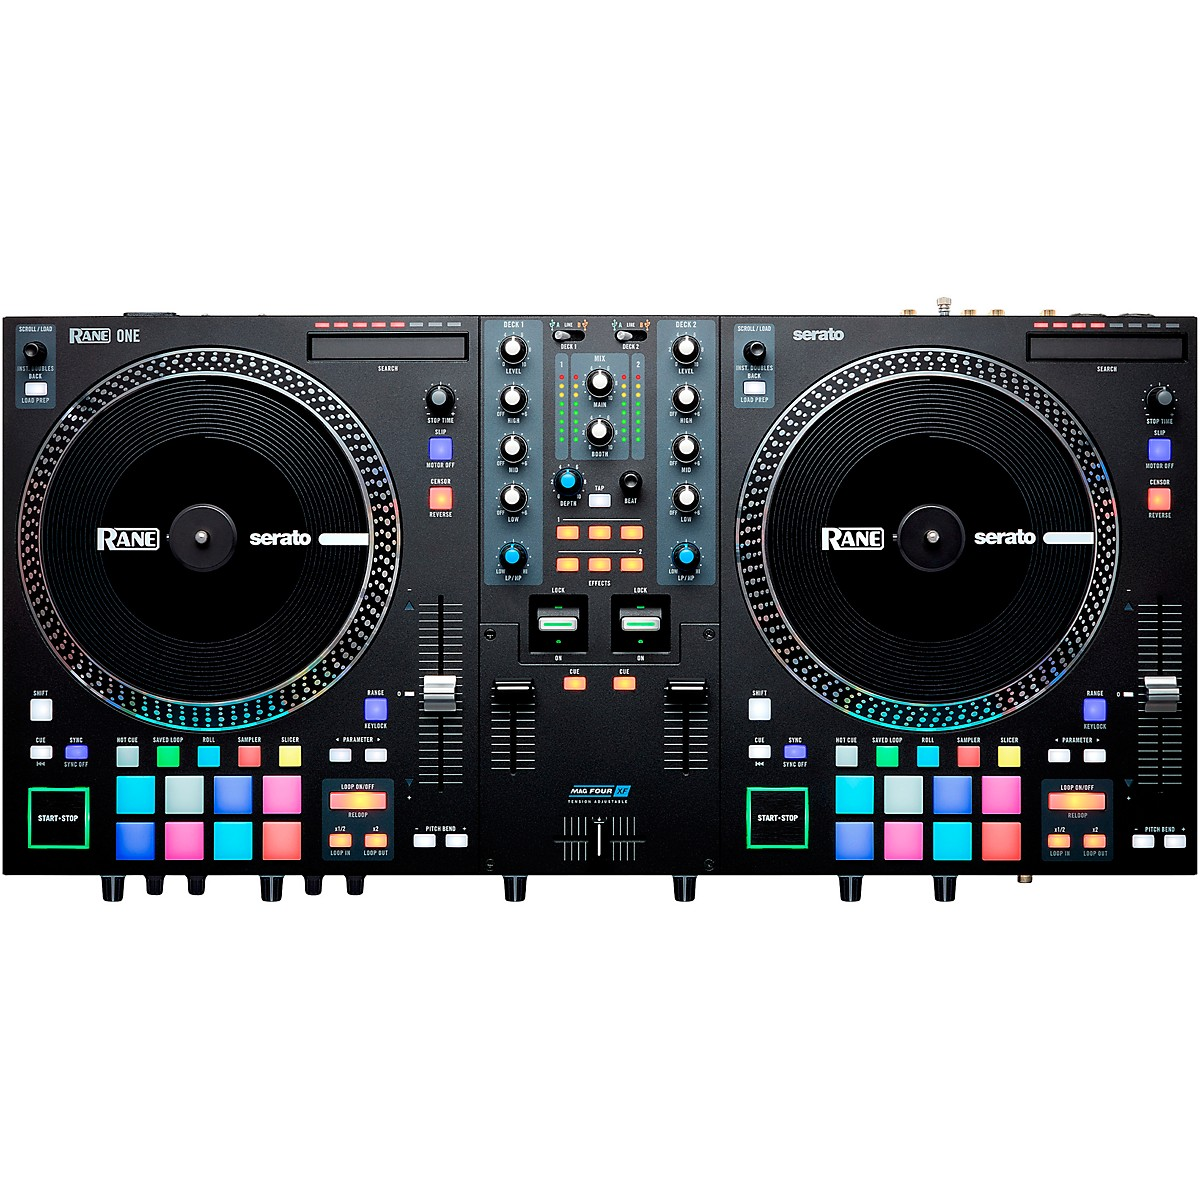 RANE DJ ONE Professional Motorized DJ Controller for Serato DJ Pro